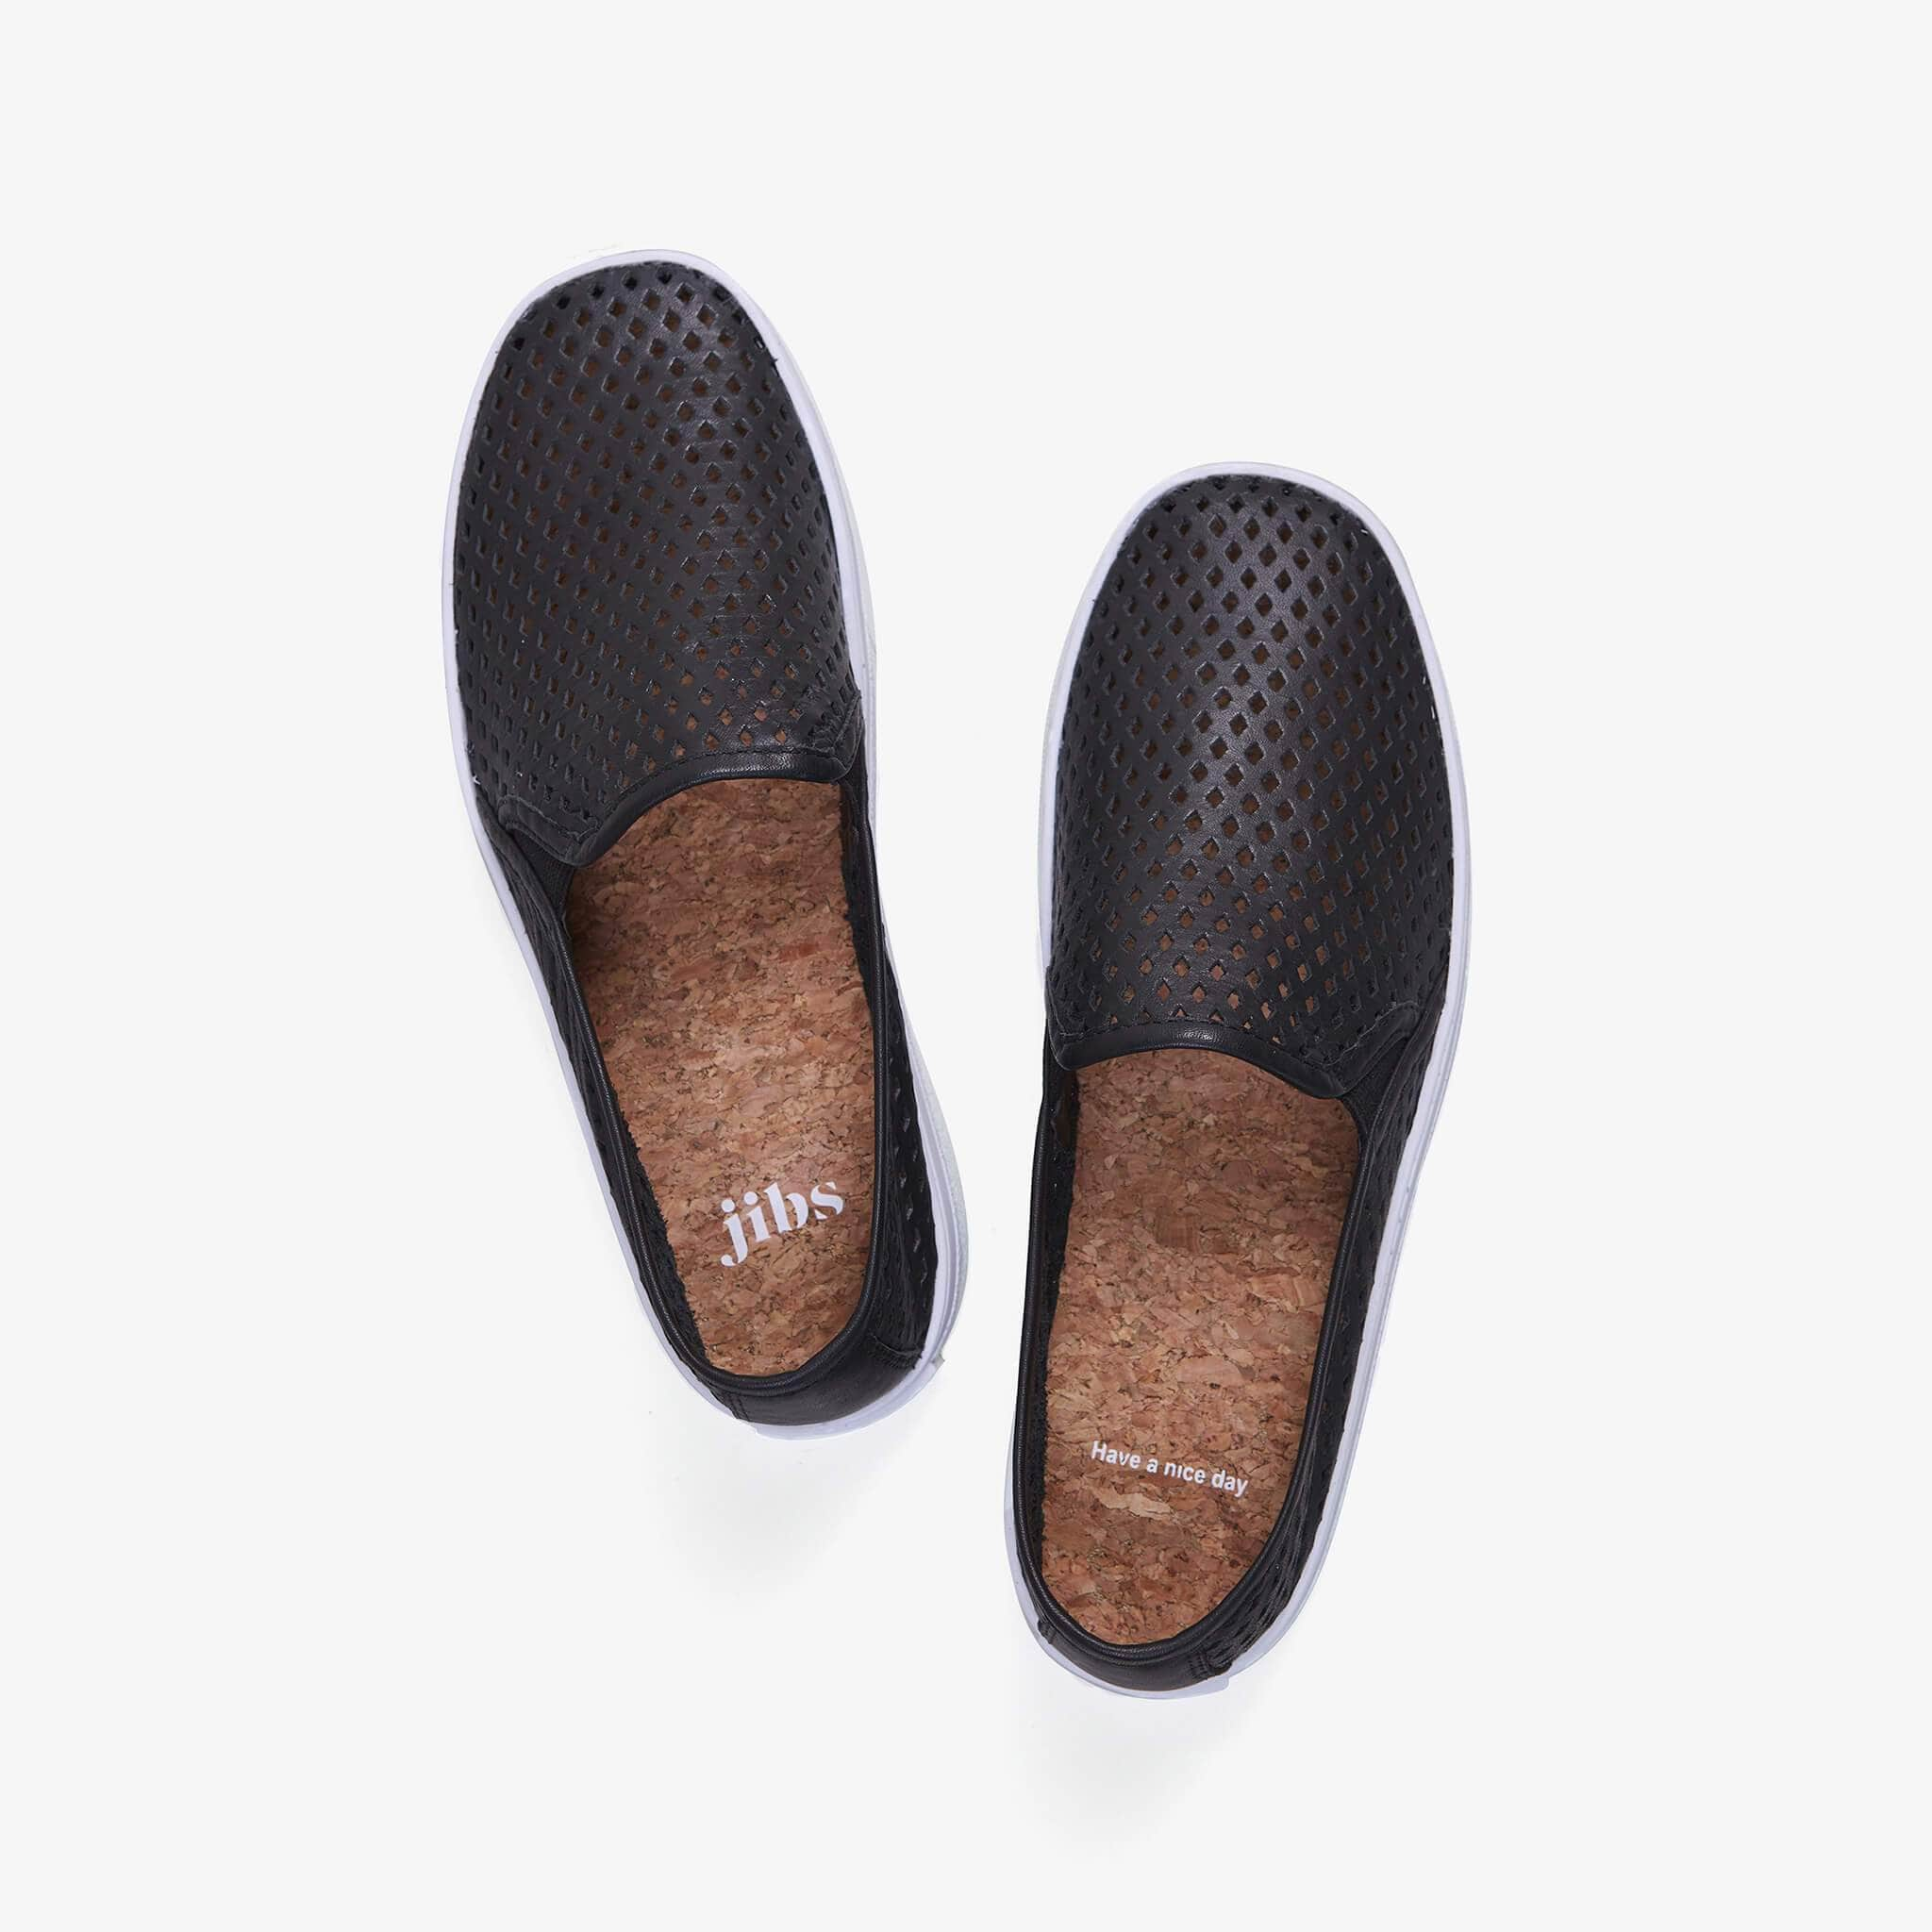 Jibs Classic Jet Black Slip On Sneaker-Shoe Top Have A Nice Day Cork In-sole